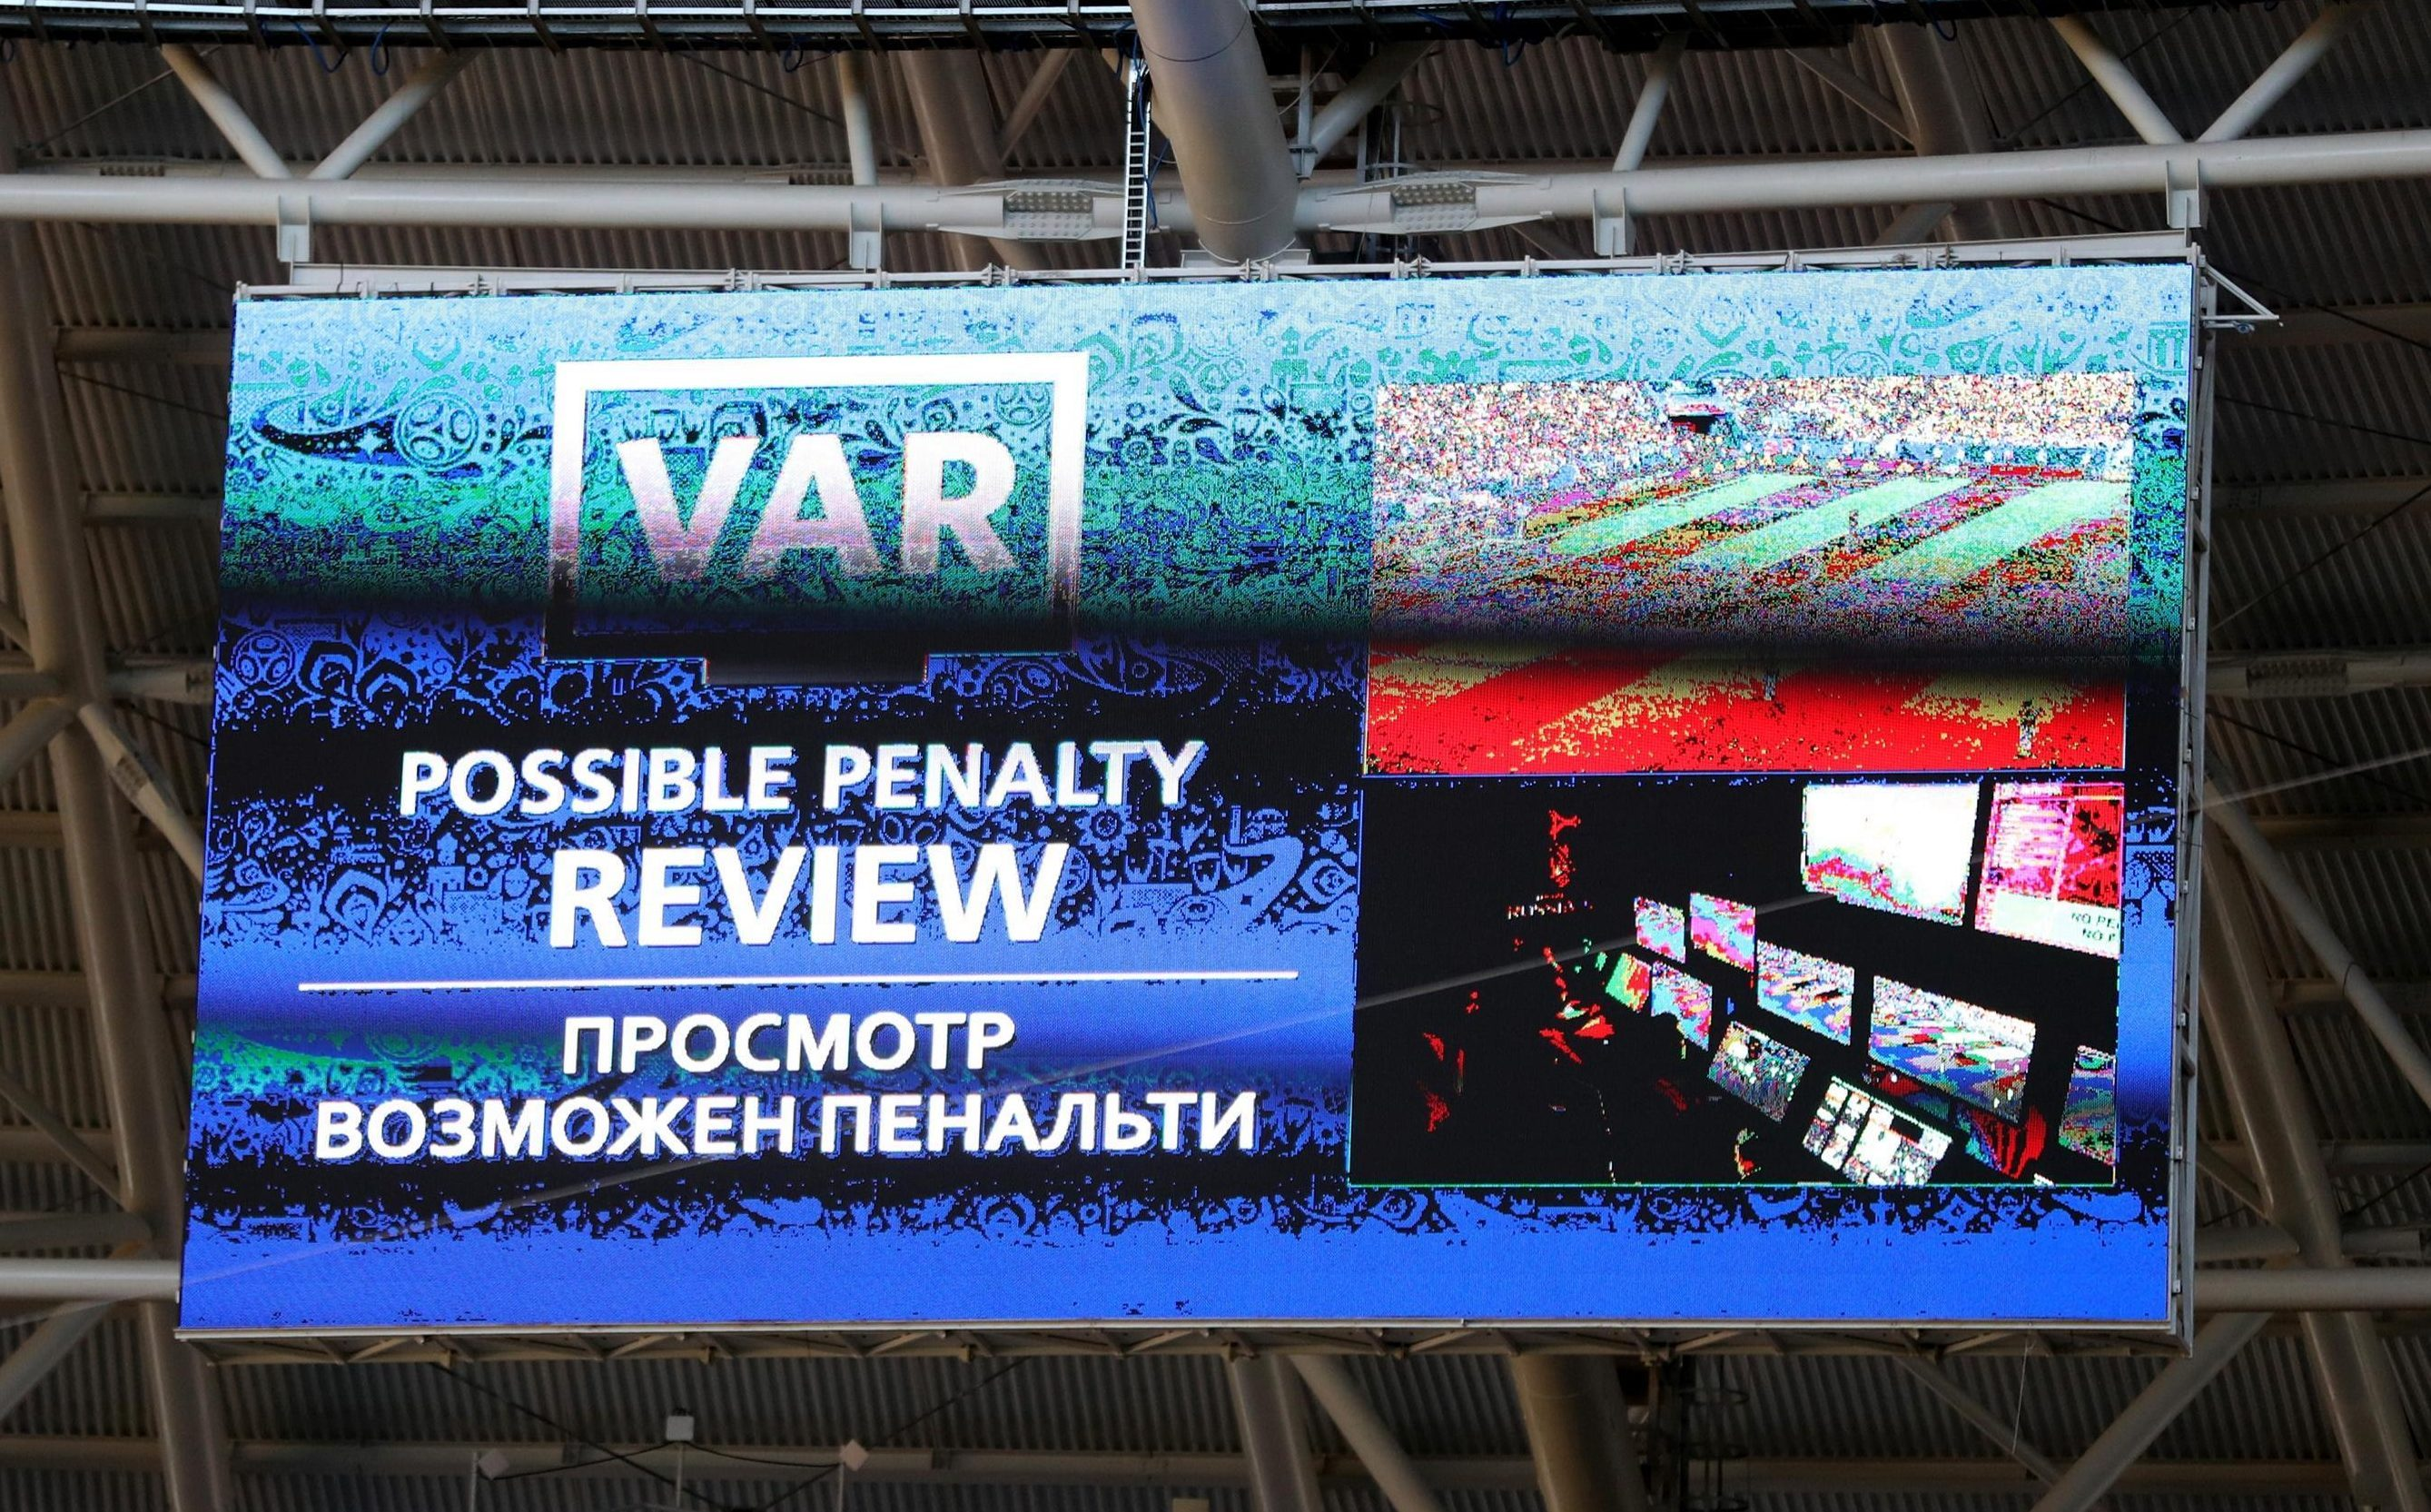 World Cup 2018: VAR has changed the World Cup – stats reveal